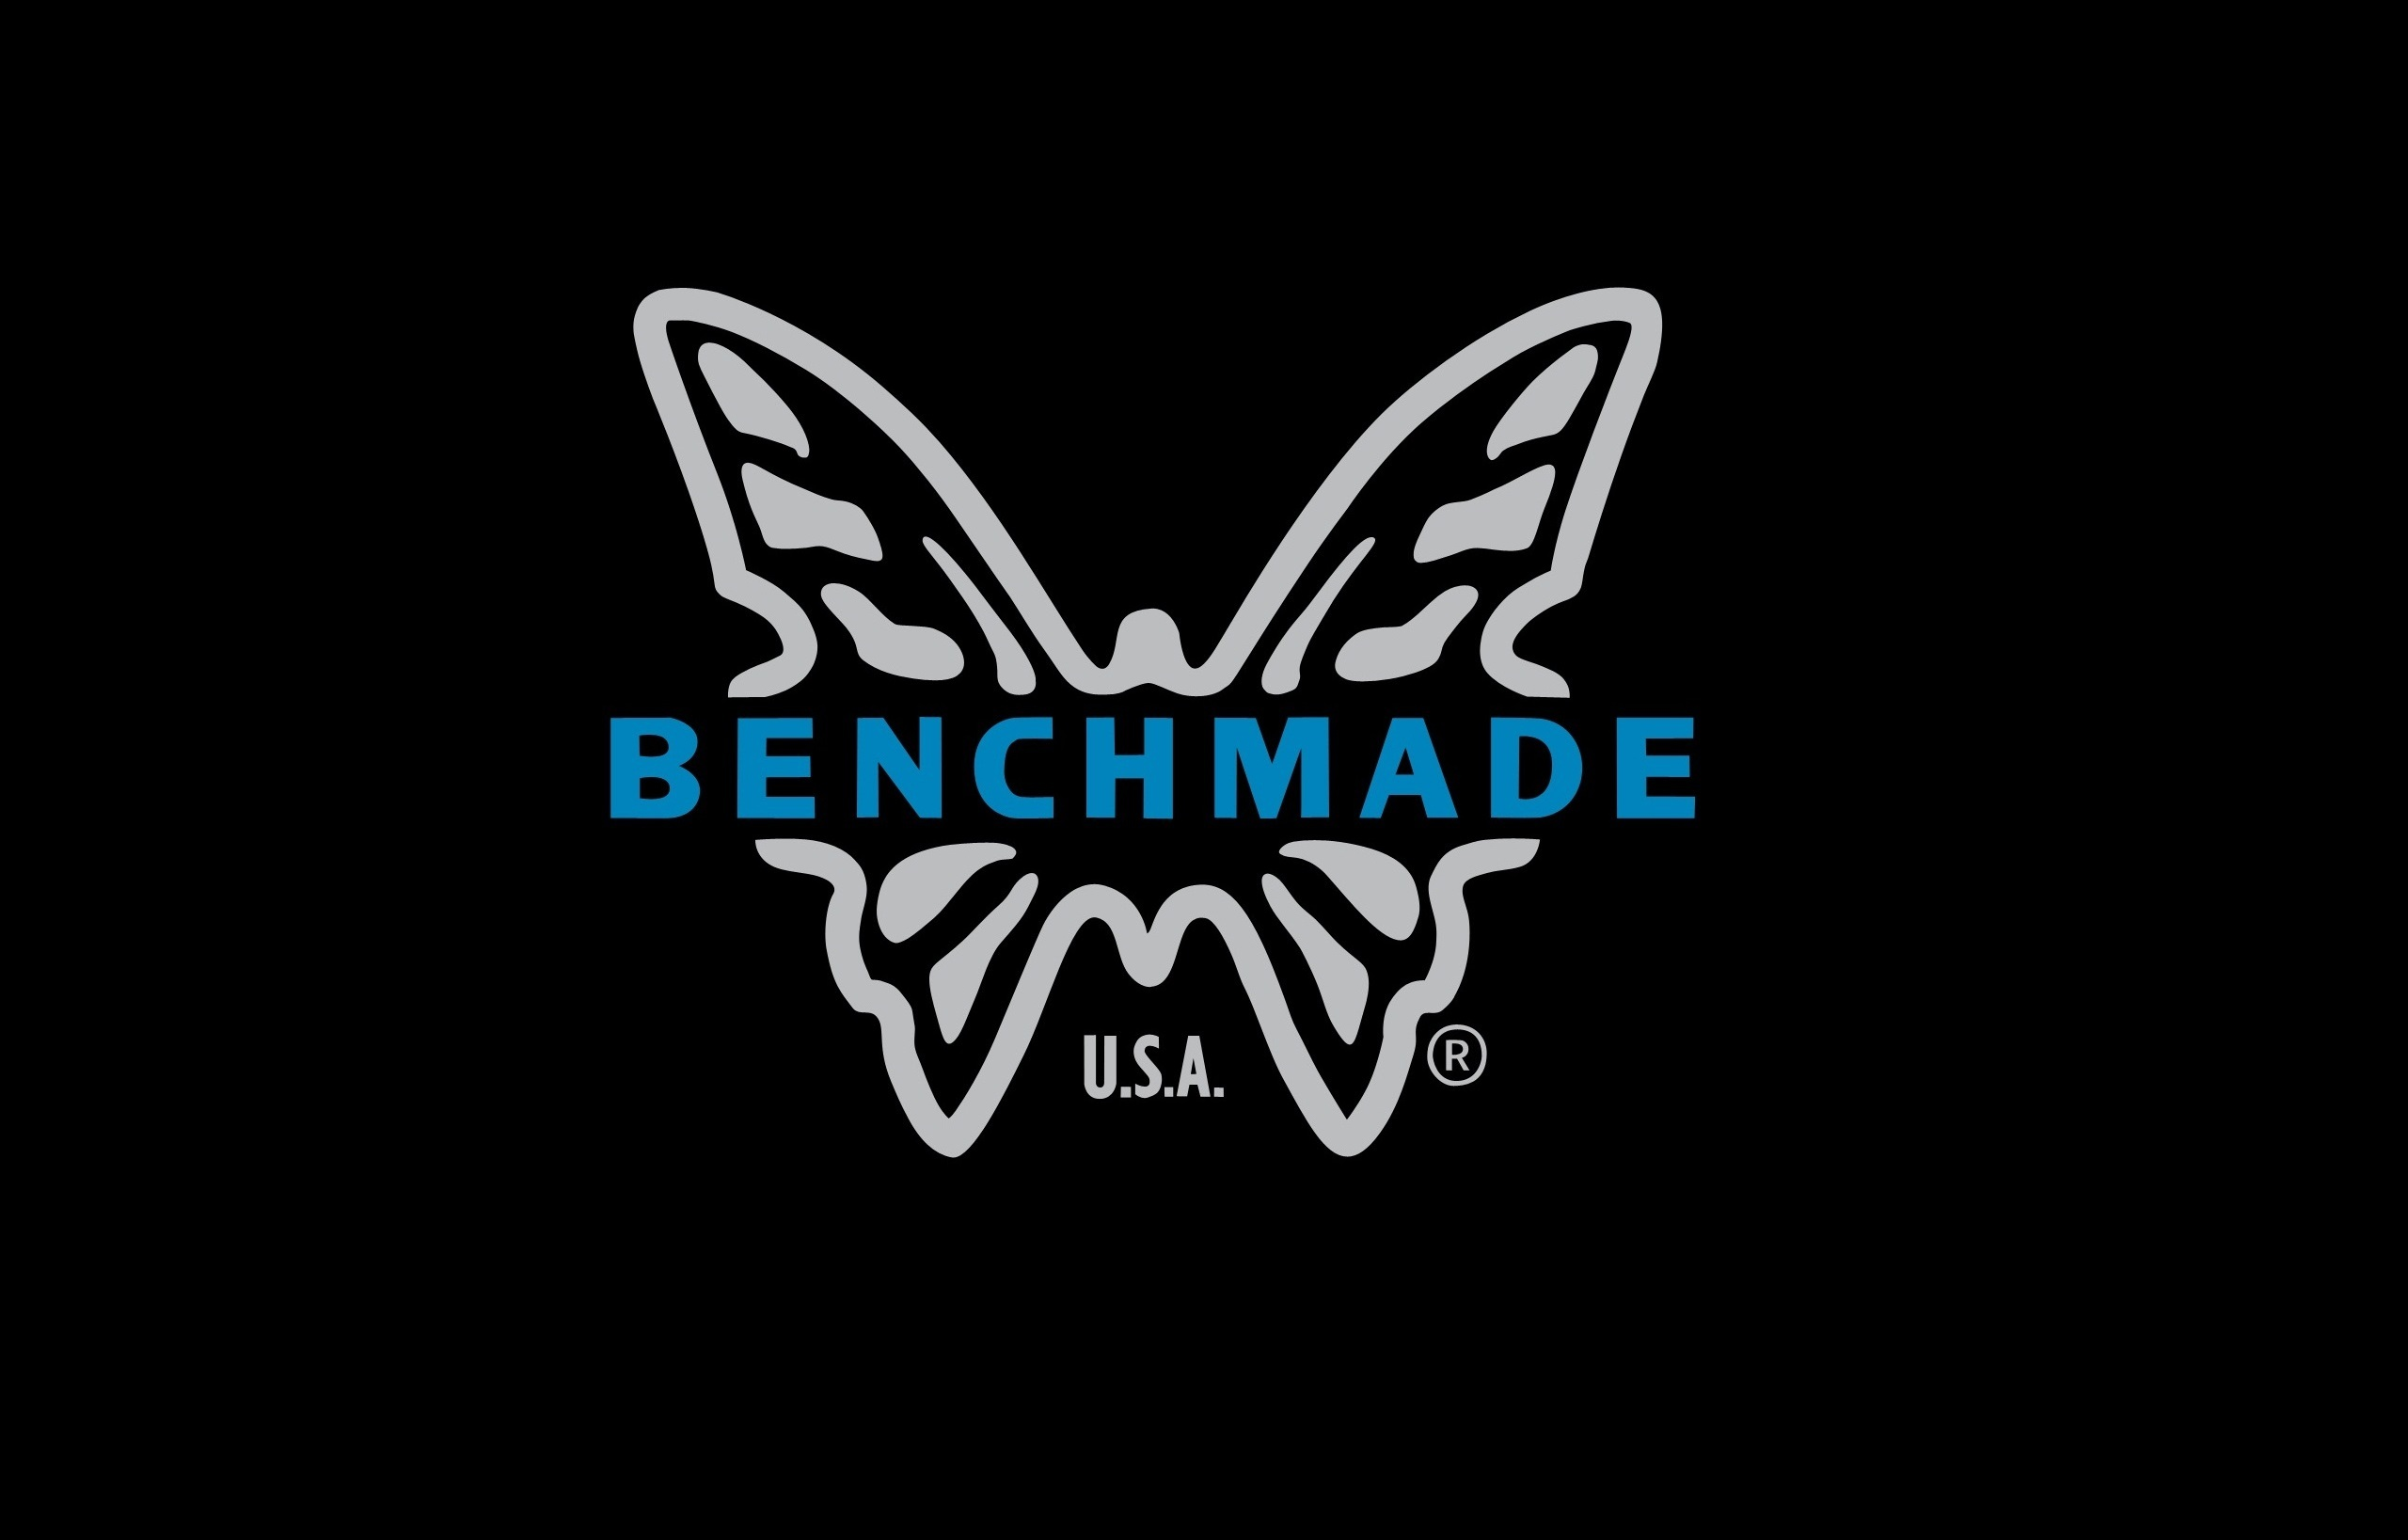 Wallpaper the company benchmade usa butterfly wallpapers weapon 2560x1637